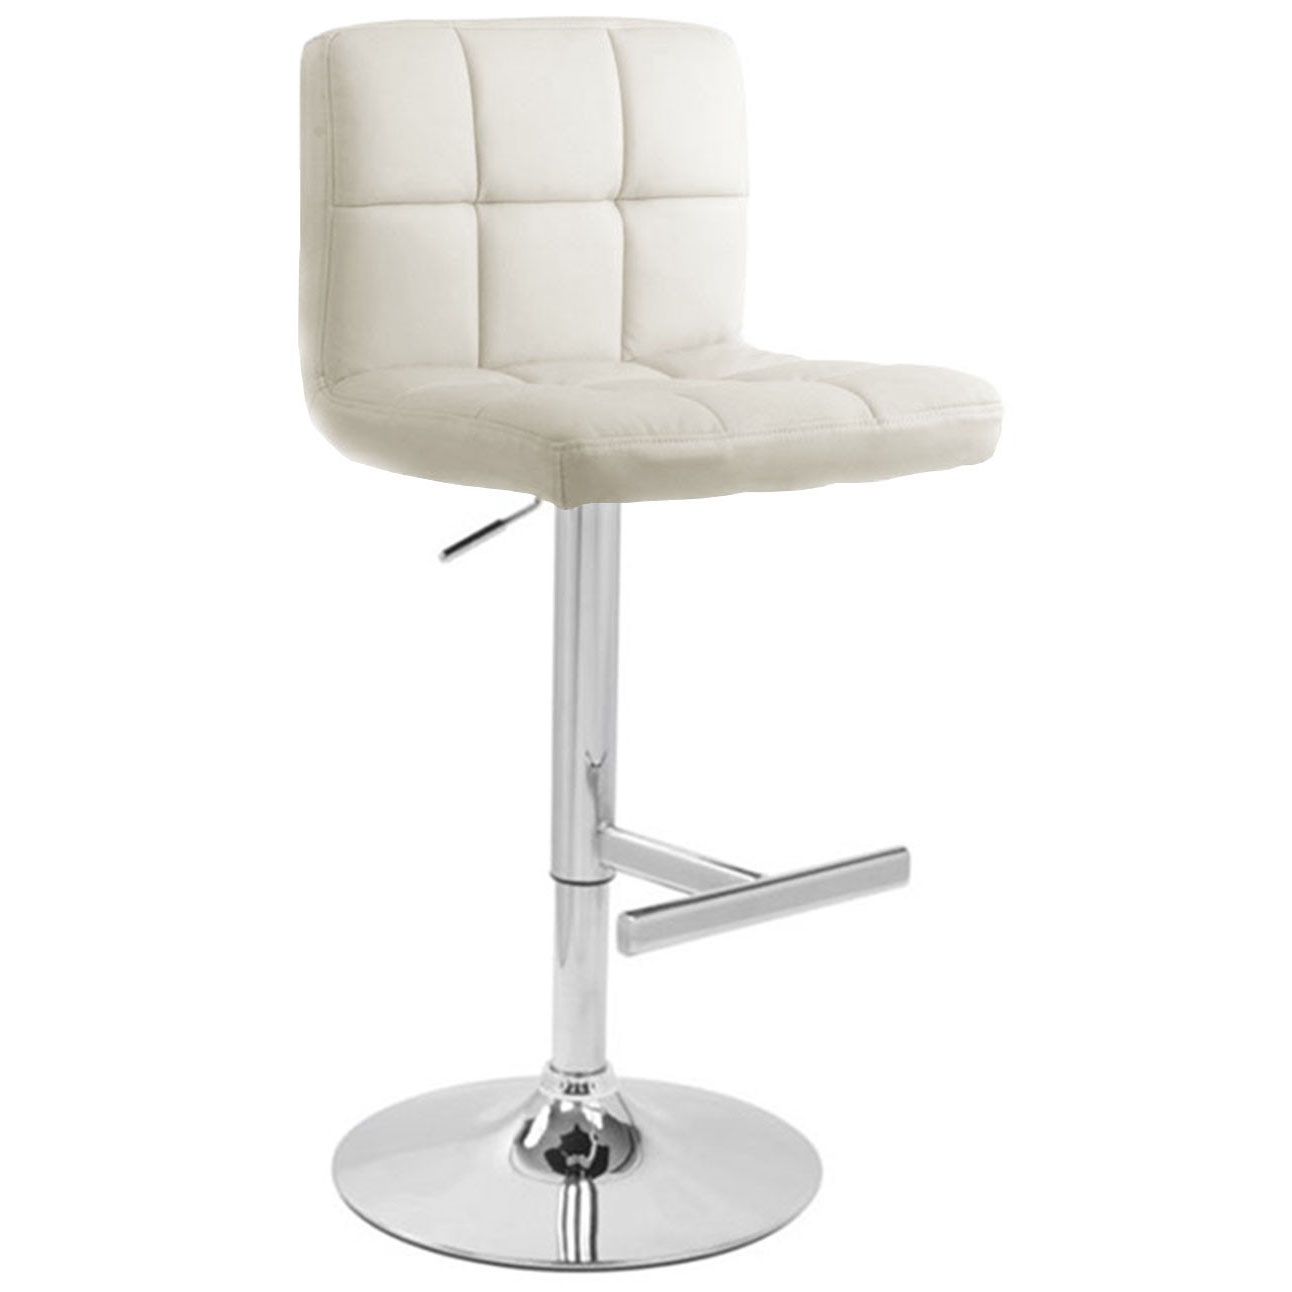 Allegro Bar Stool - White Product Image